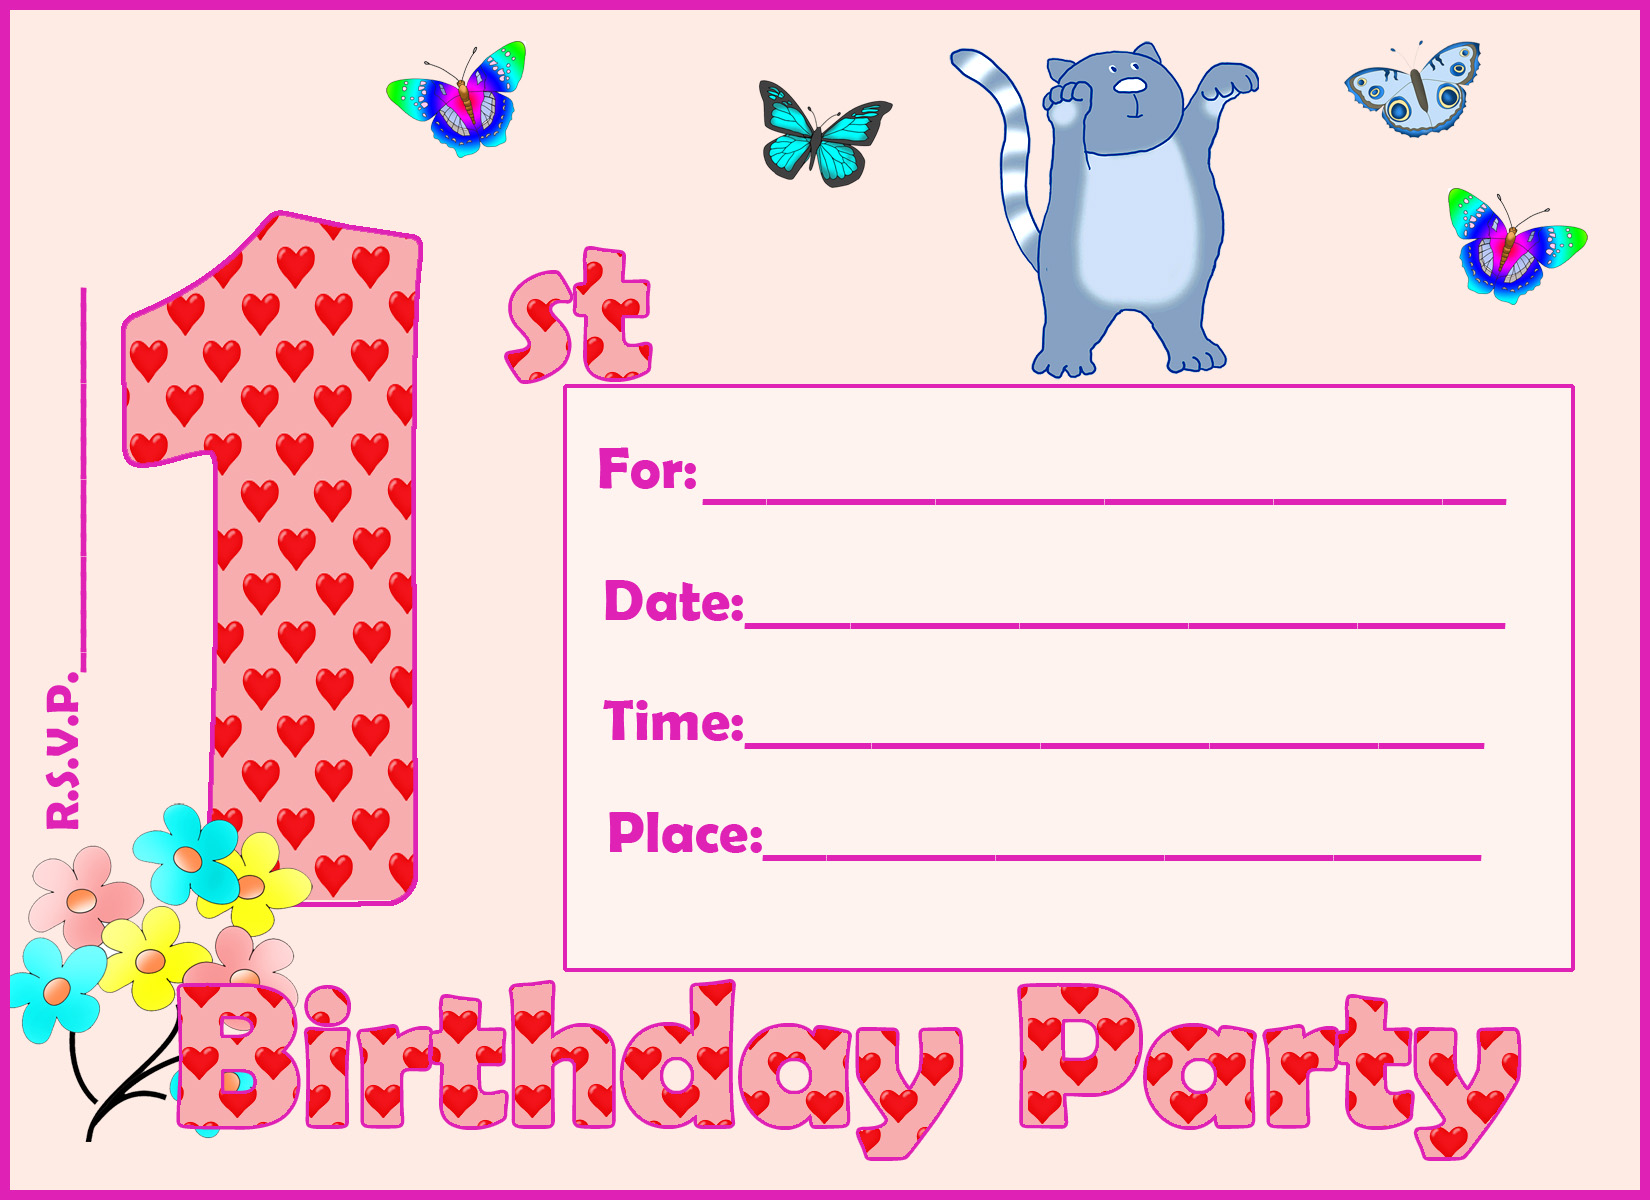 printable 1st birthday cards ; invitation-1-st-birthday-patterns-butterfly-cat